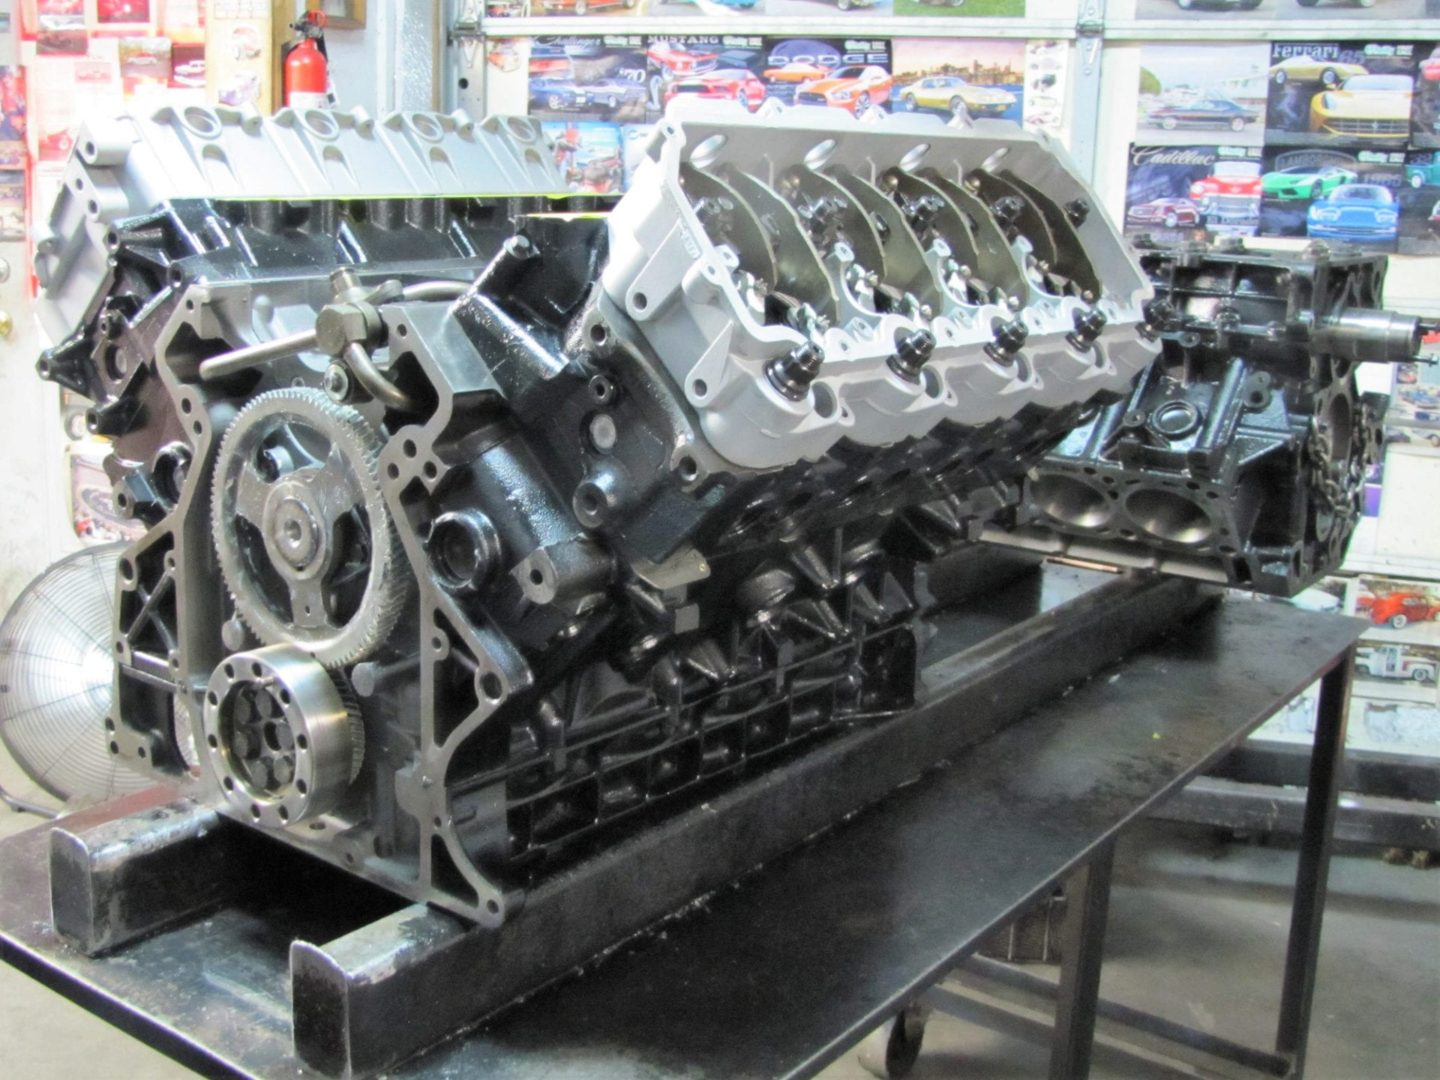 One of our Powerstroke 6.0 Remanufactured Diesel Engines